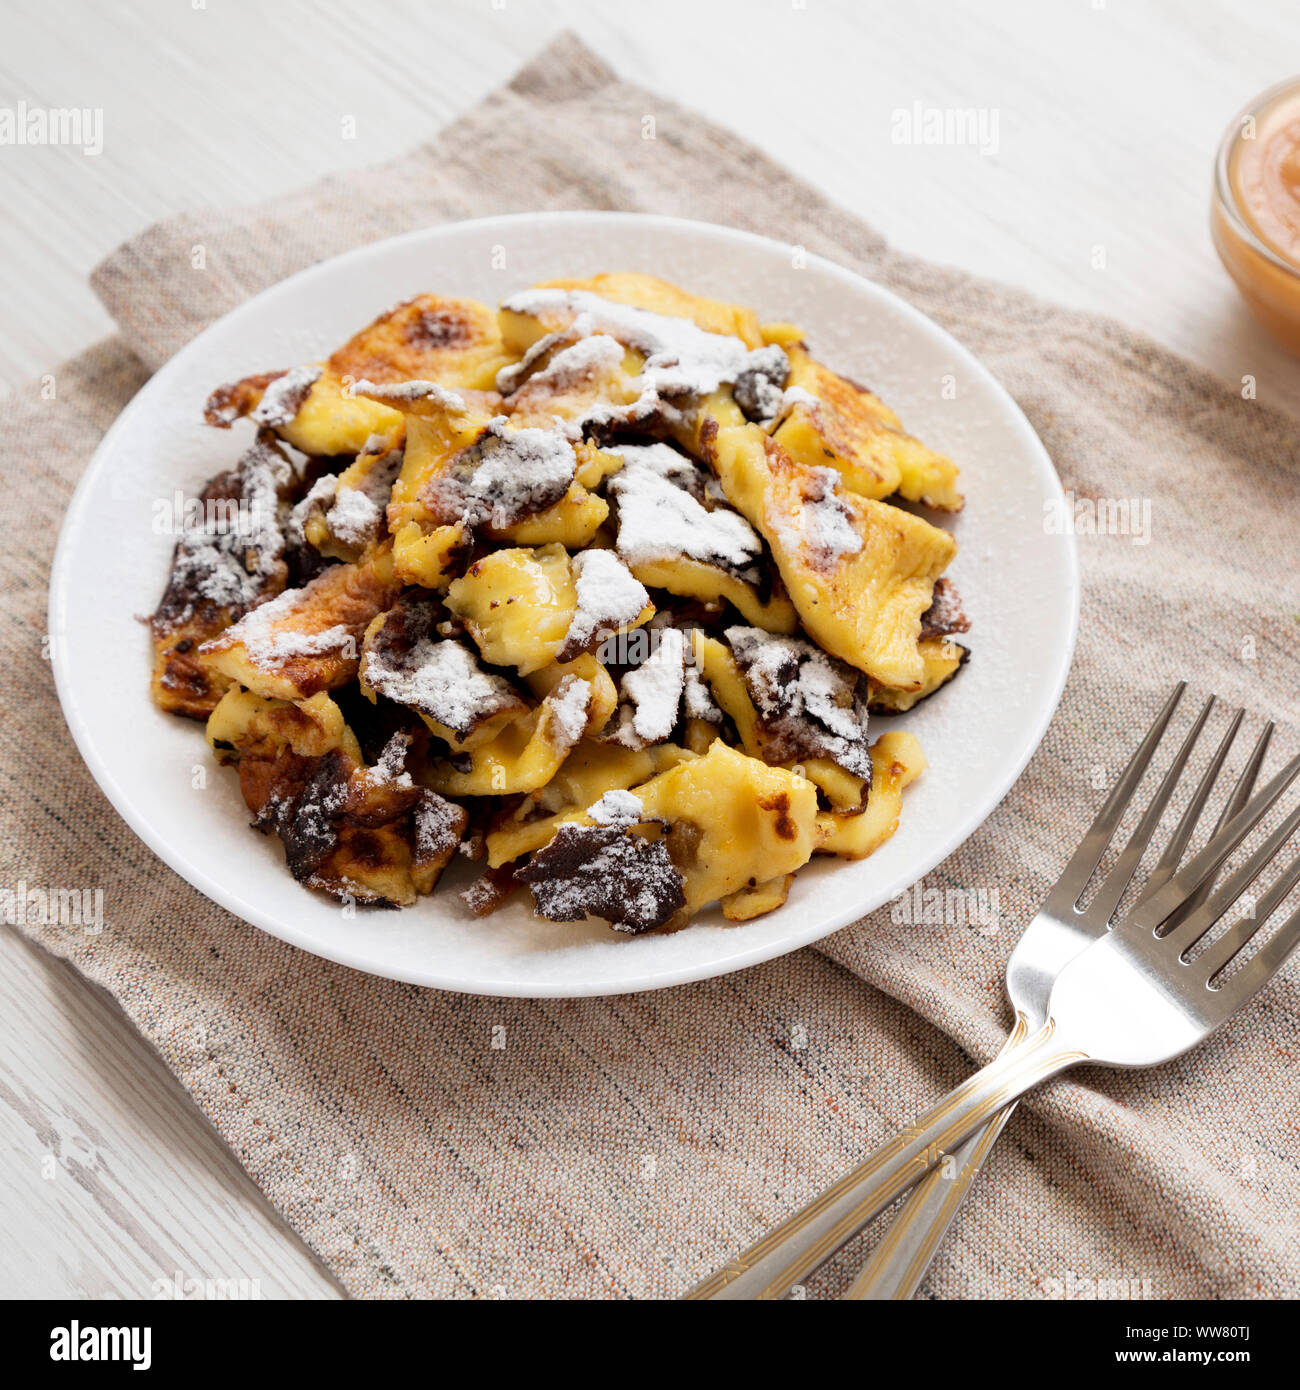 Homemade german Kaiserschmarrn pancake on a white plate, low angle view. Close-up. Stock Photo